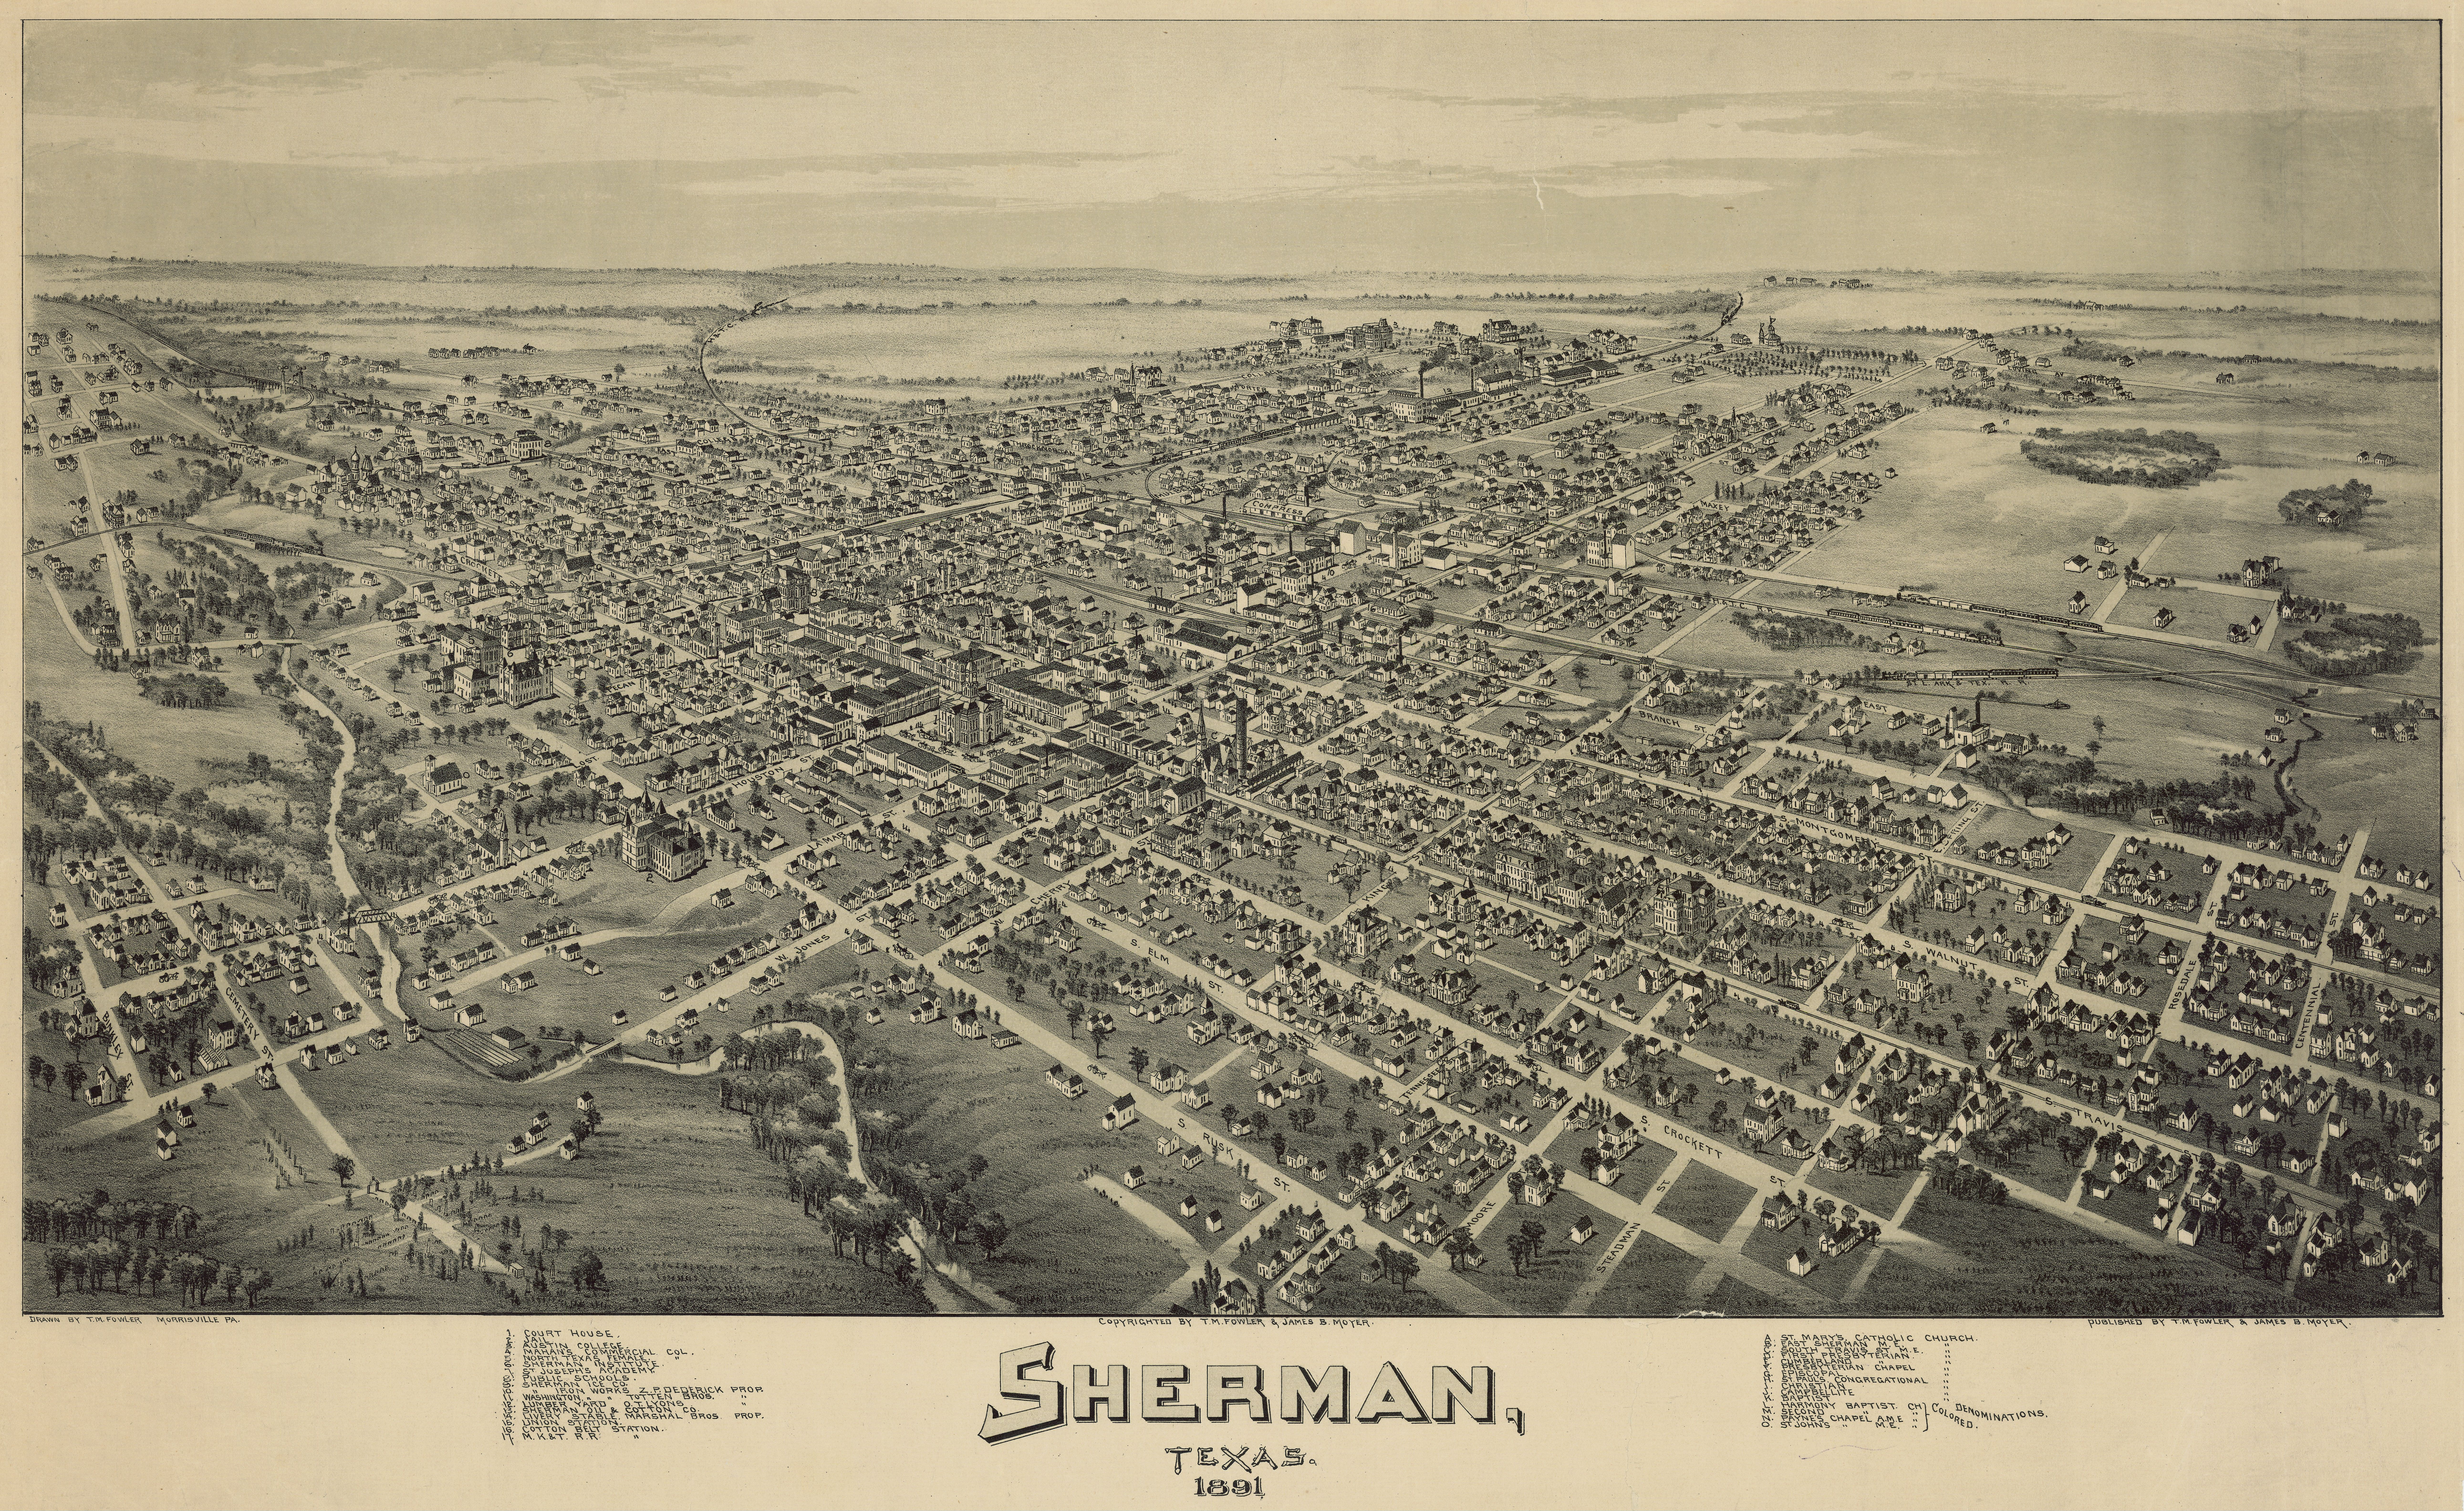 Sherman, Texas